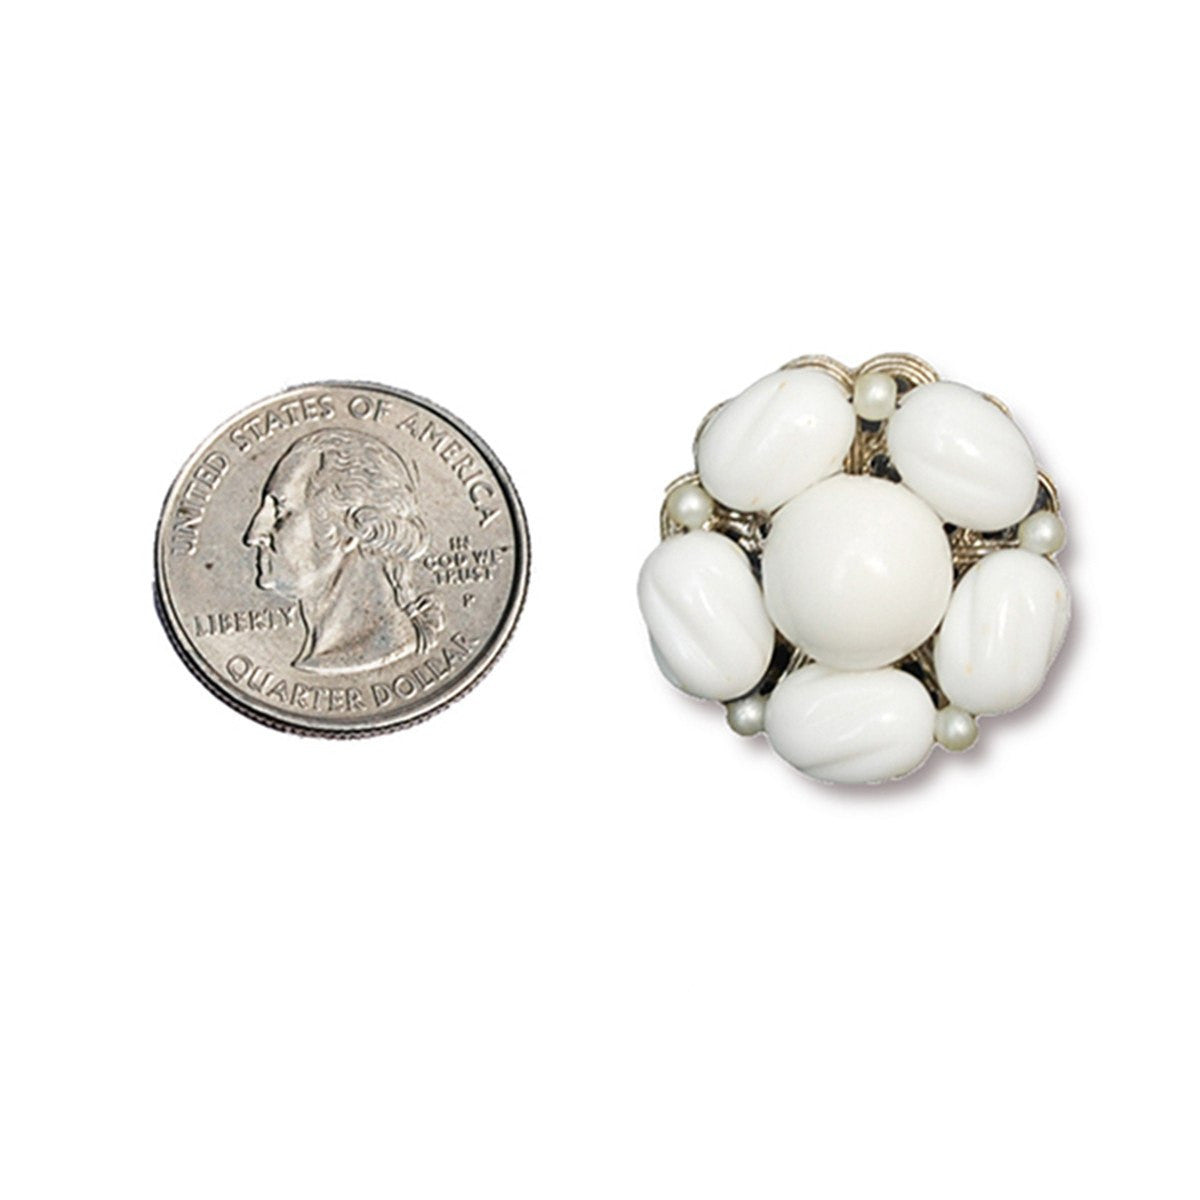 1950s Milk Glass Cluster Bead Earrings by Hobe 5